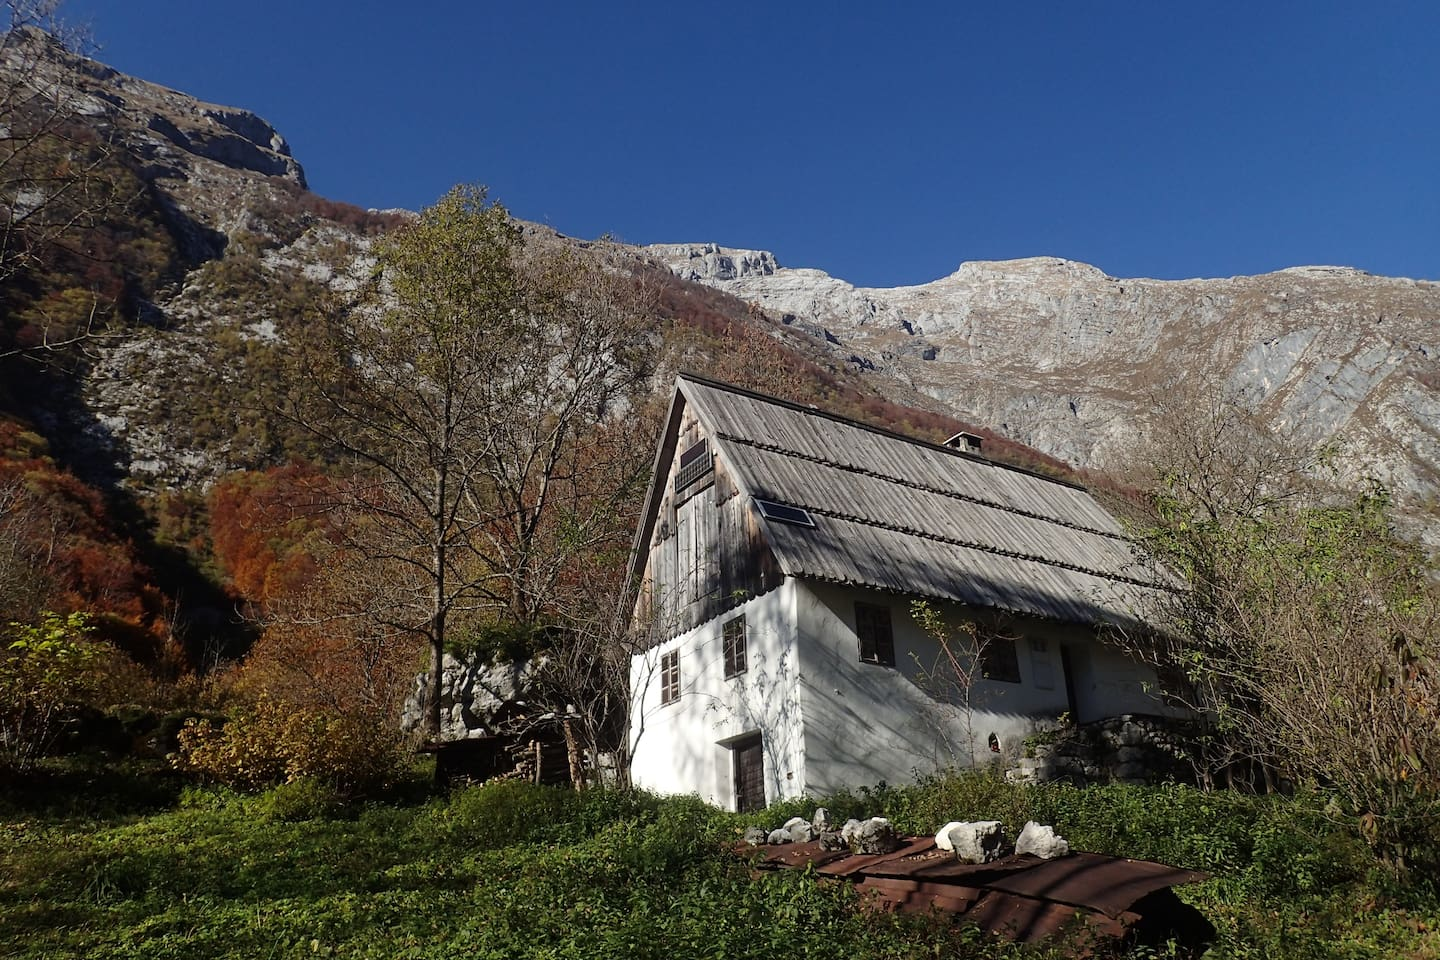 Elderflower house in a hearth of the Triglav national park